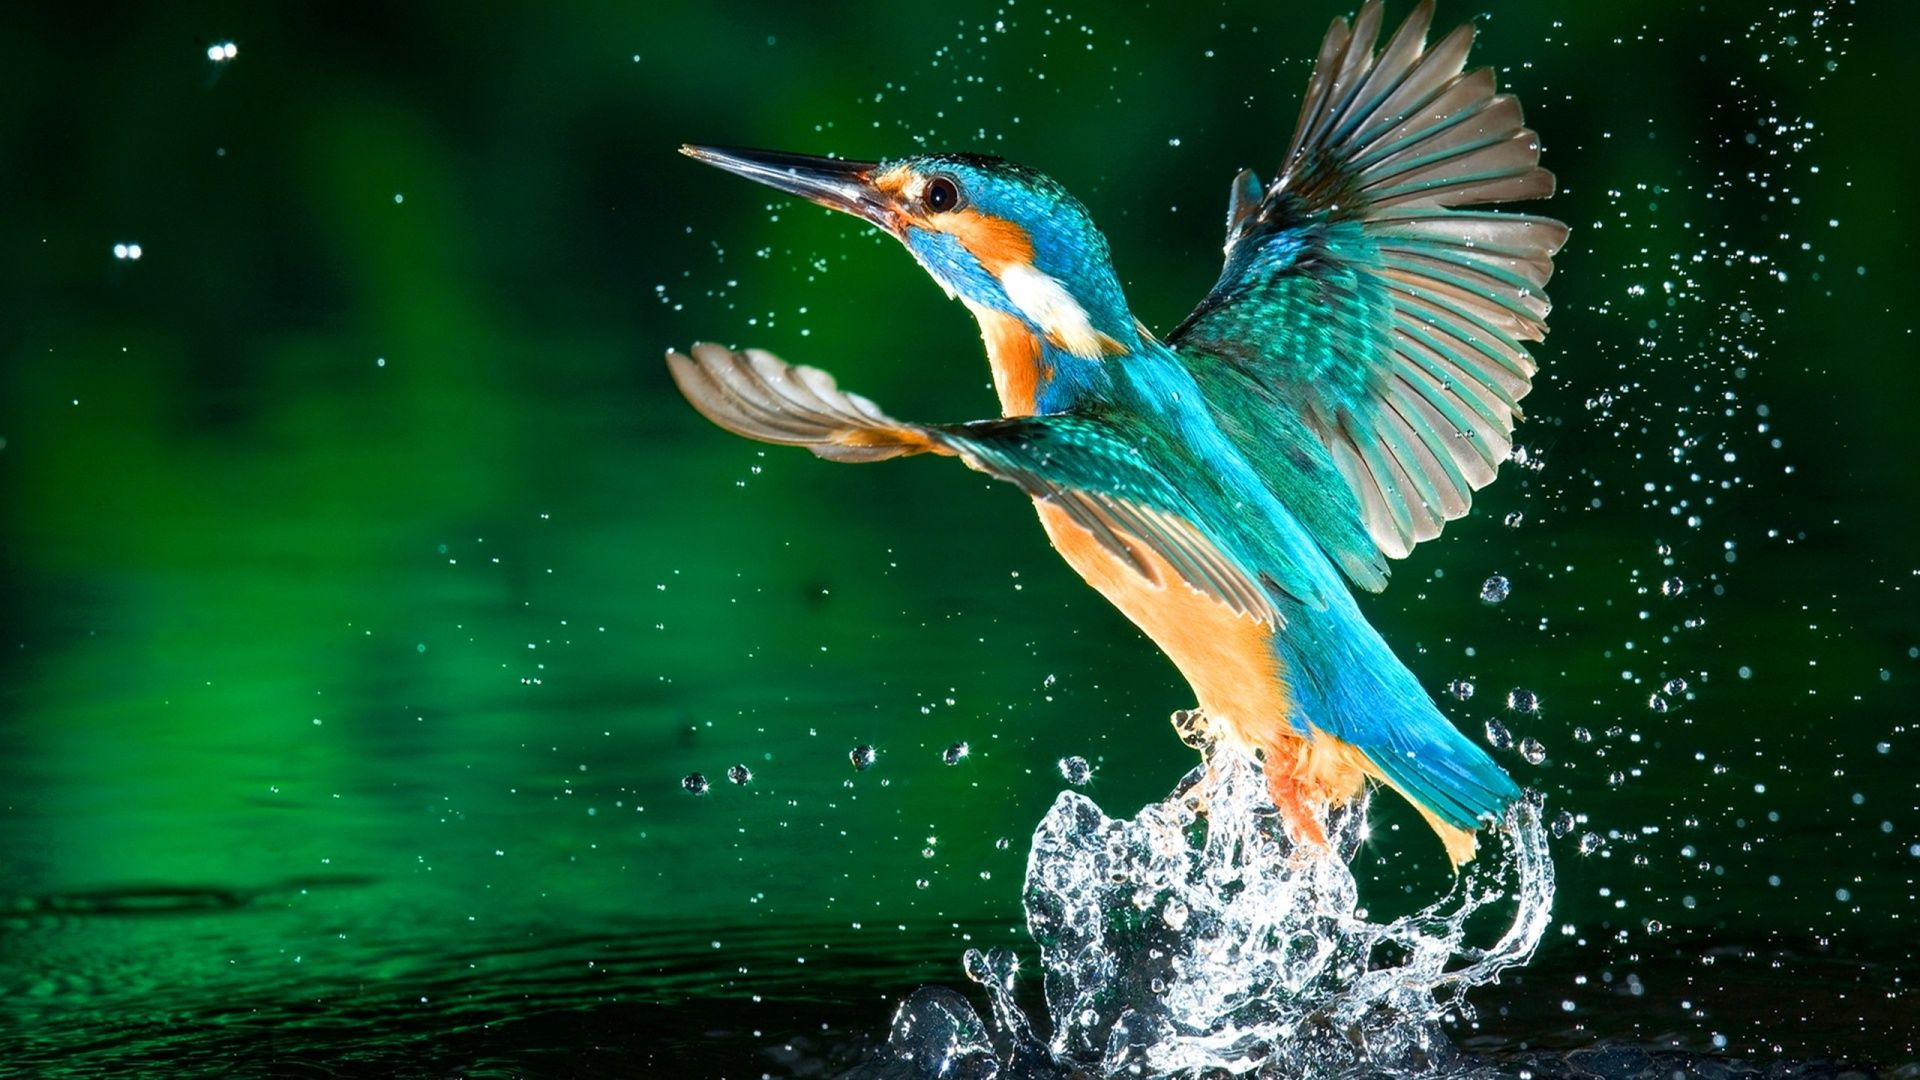 Kingfisher Bird Hd Wallpapers Free Download 1080p Hd Nature Wallpapers Bird Wallpaper Nature Wallpaper